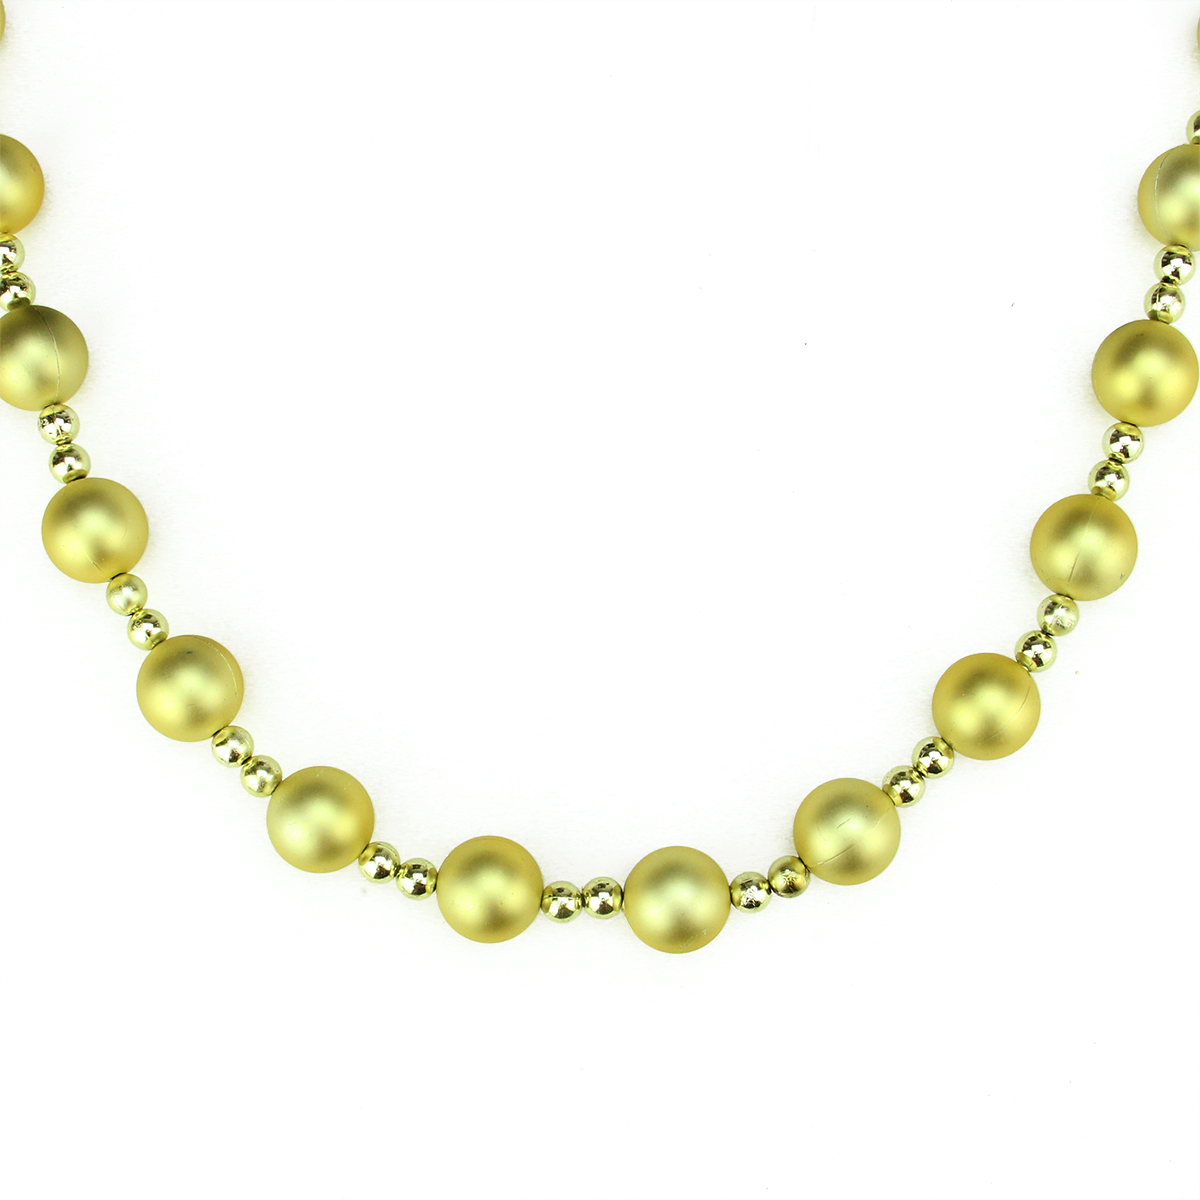 9 decorative shatterproof matte and shiny gold beaded